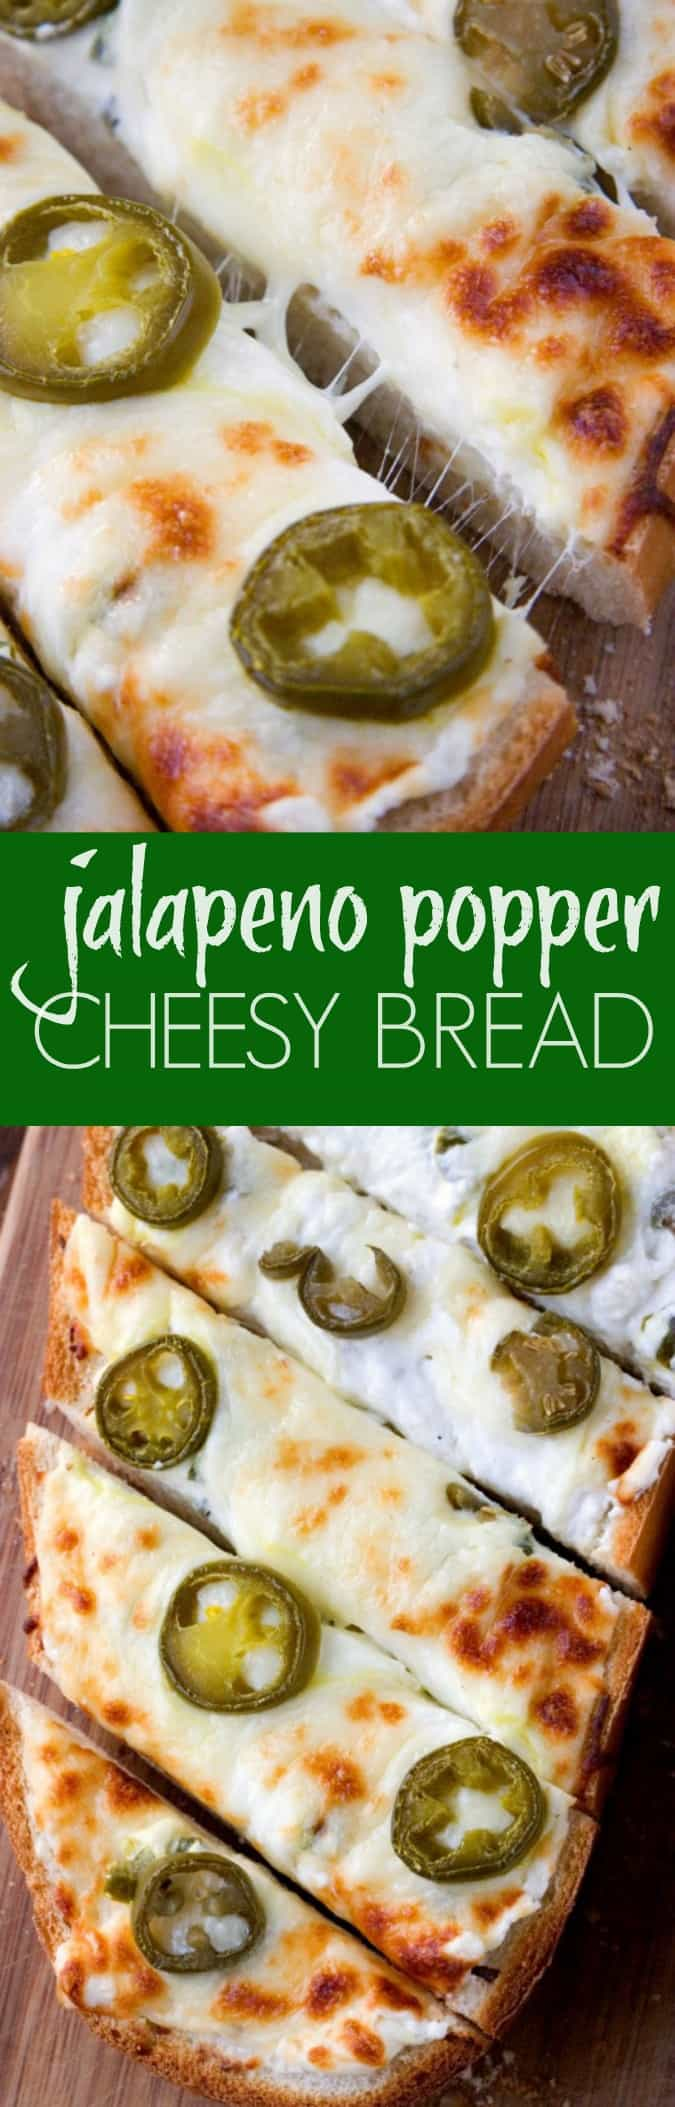 jalapeno popper cheesy bread long Jalapeno Popper Cheesy Garlic Bread